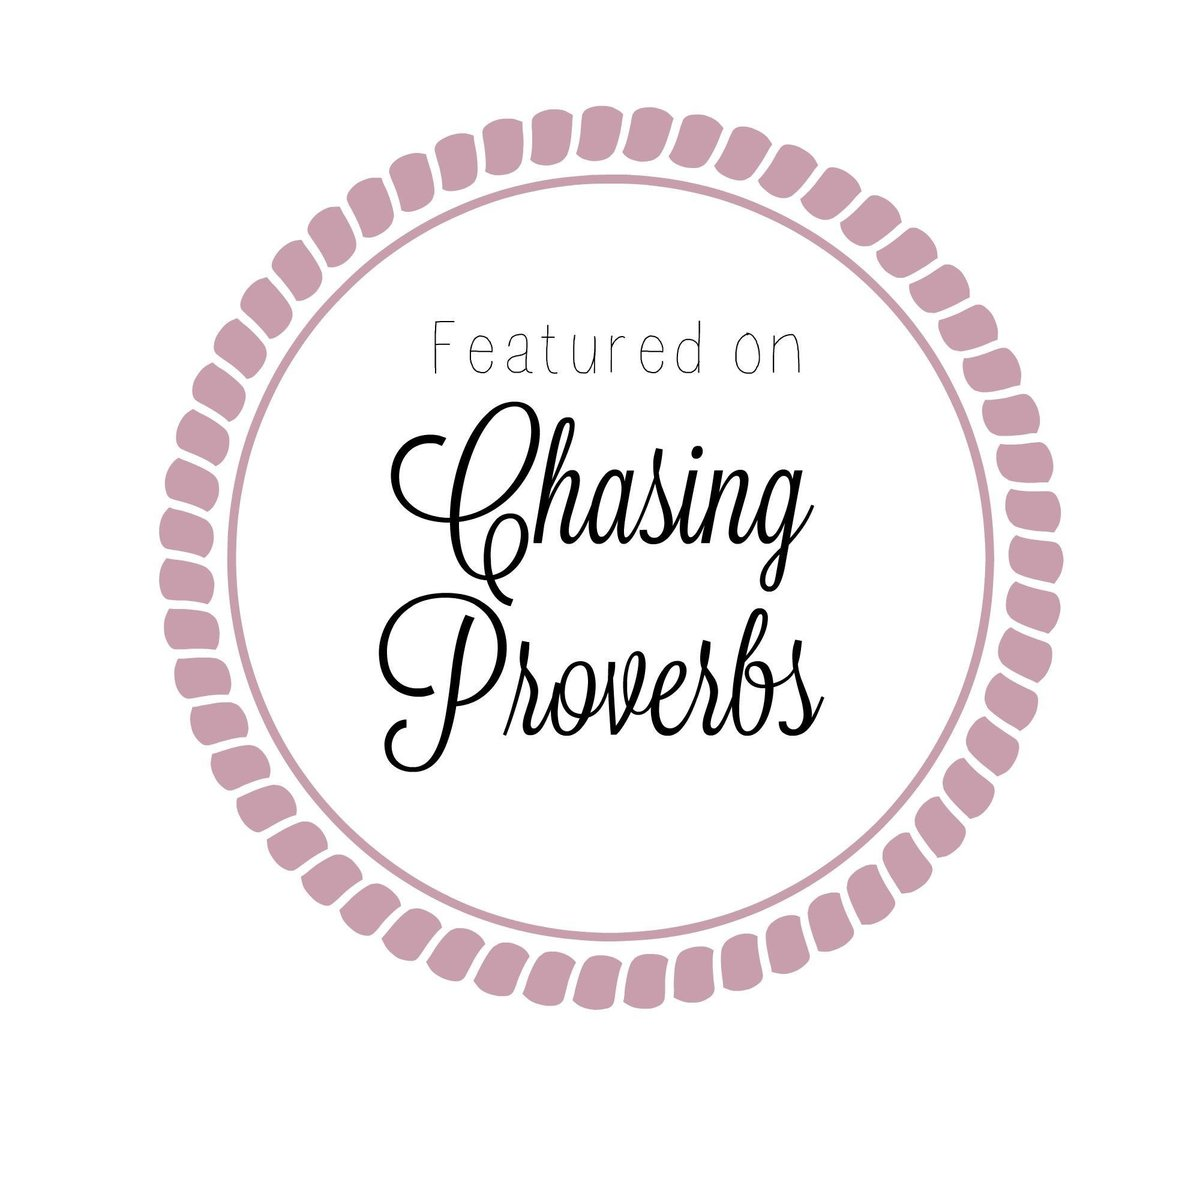 Featured on Chasing Proverbs